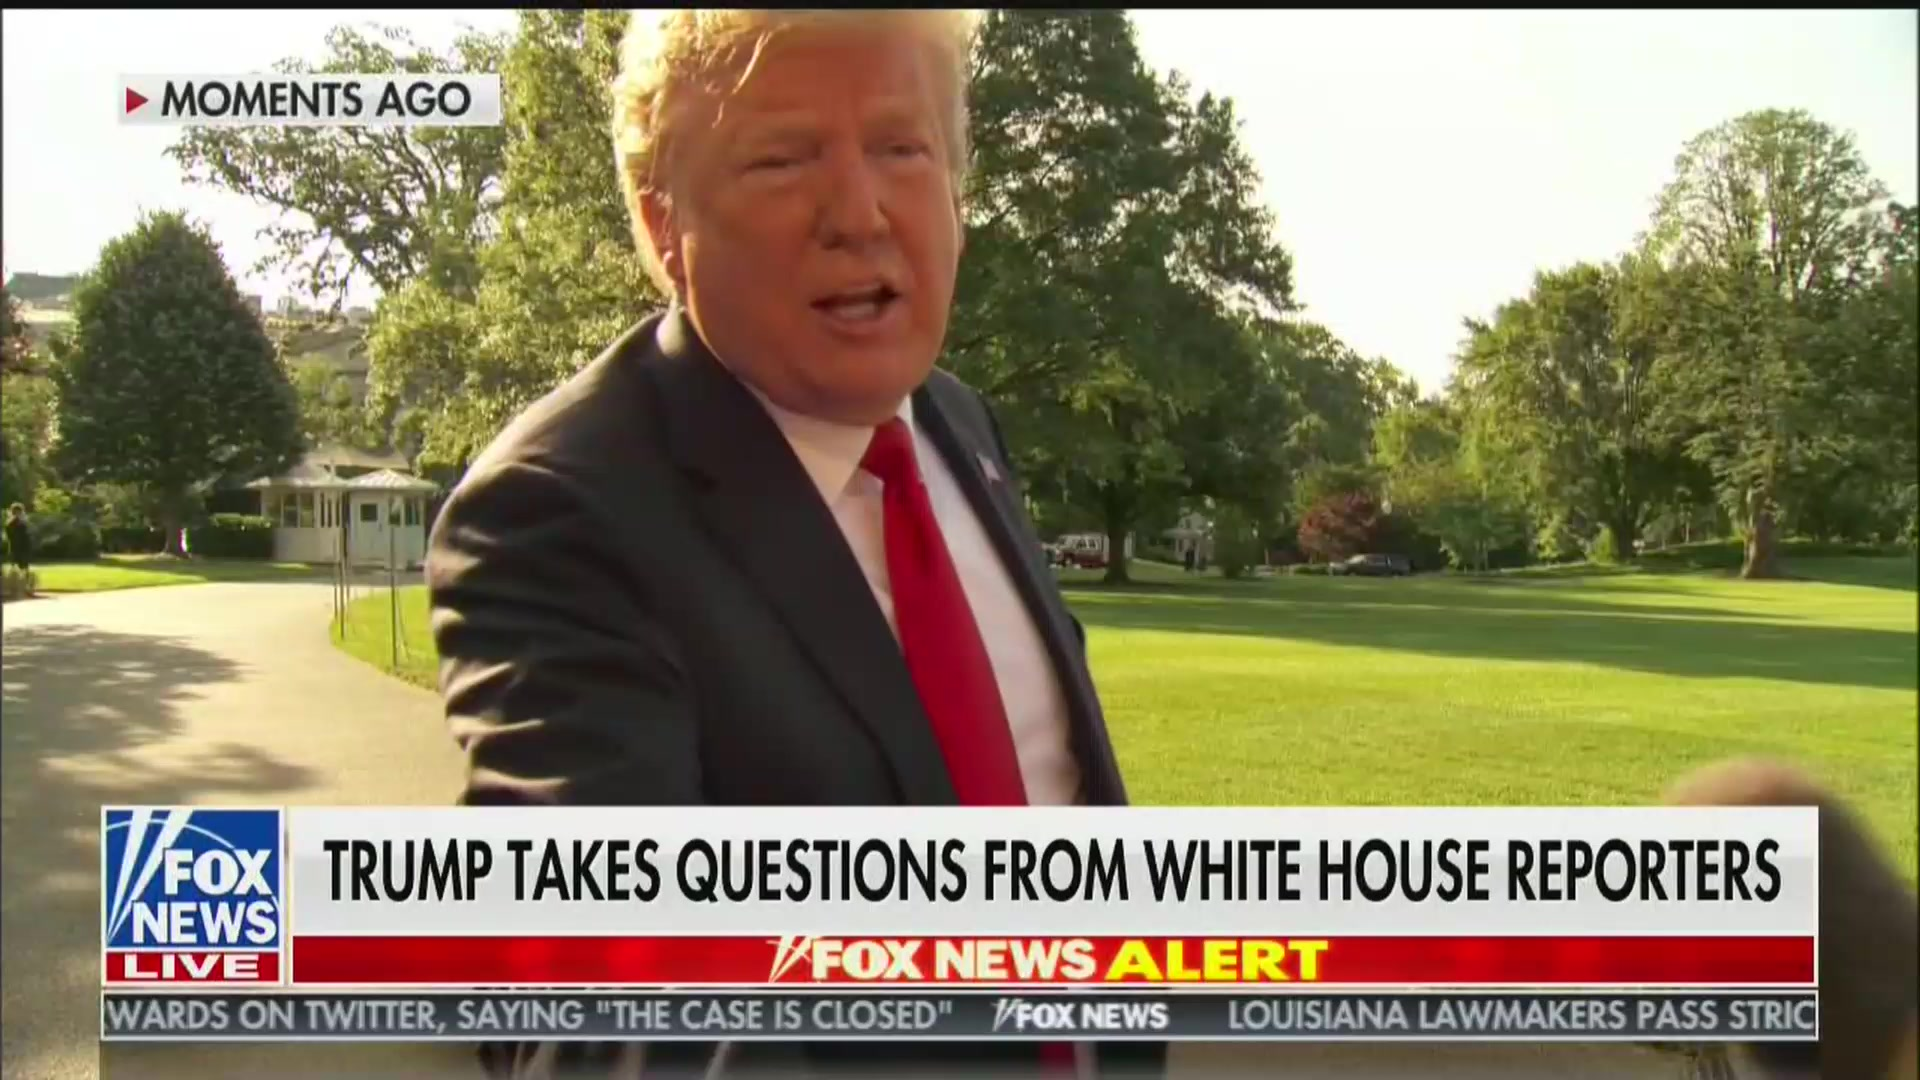 Trump Shakes Fox News Reporter's Hand, Thanks Him for Treating Him 'Fairly'